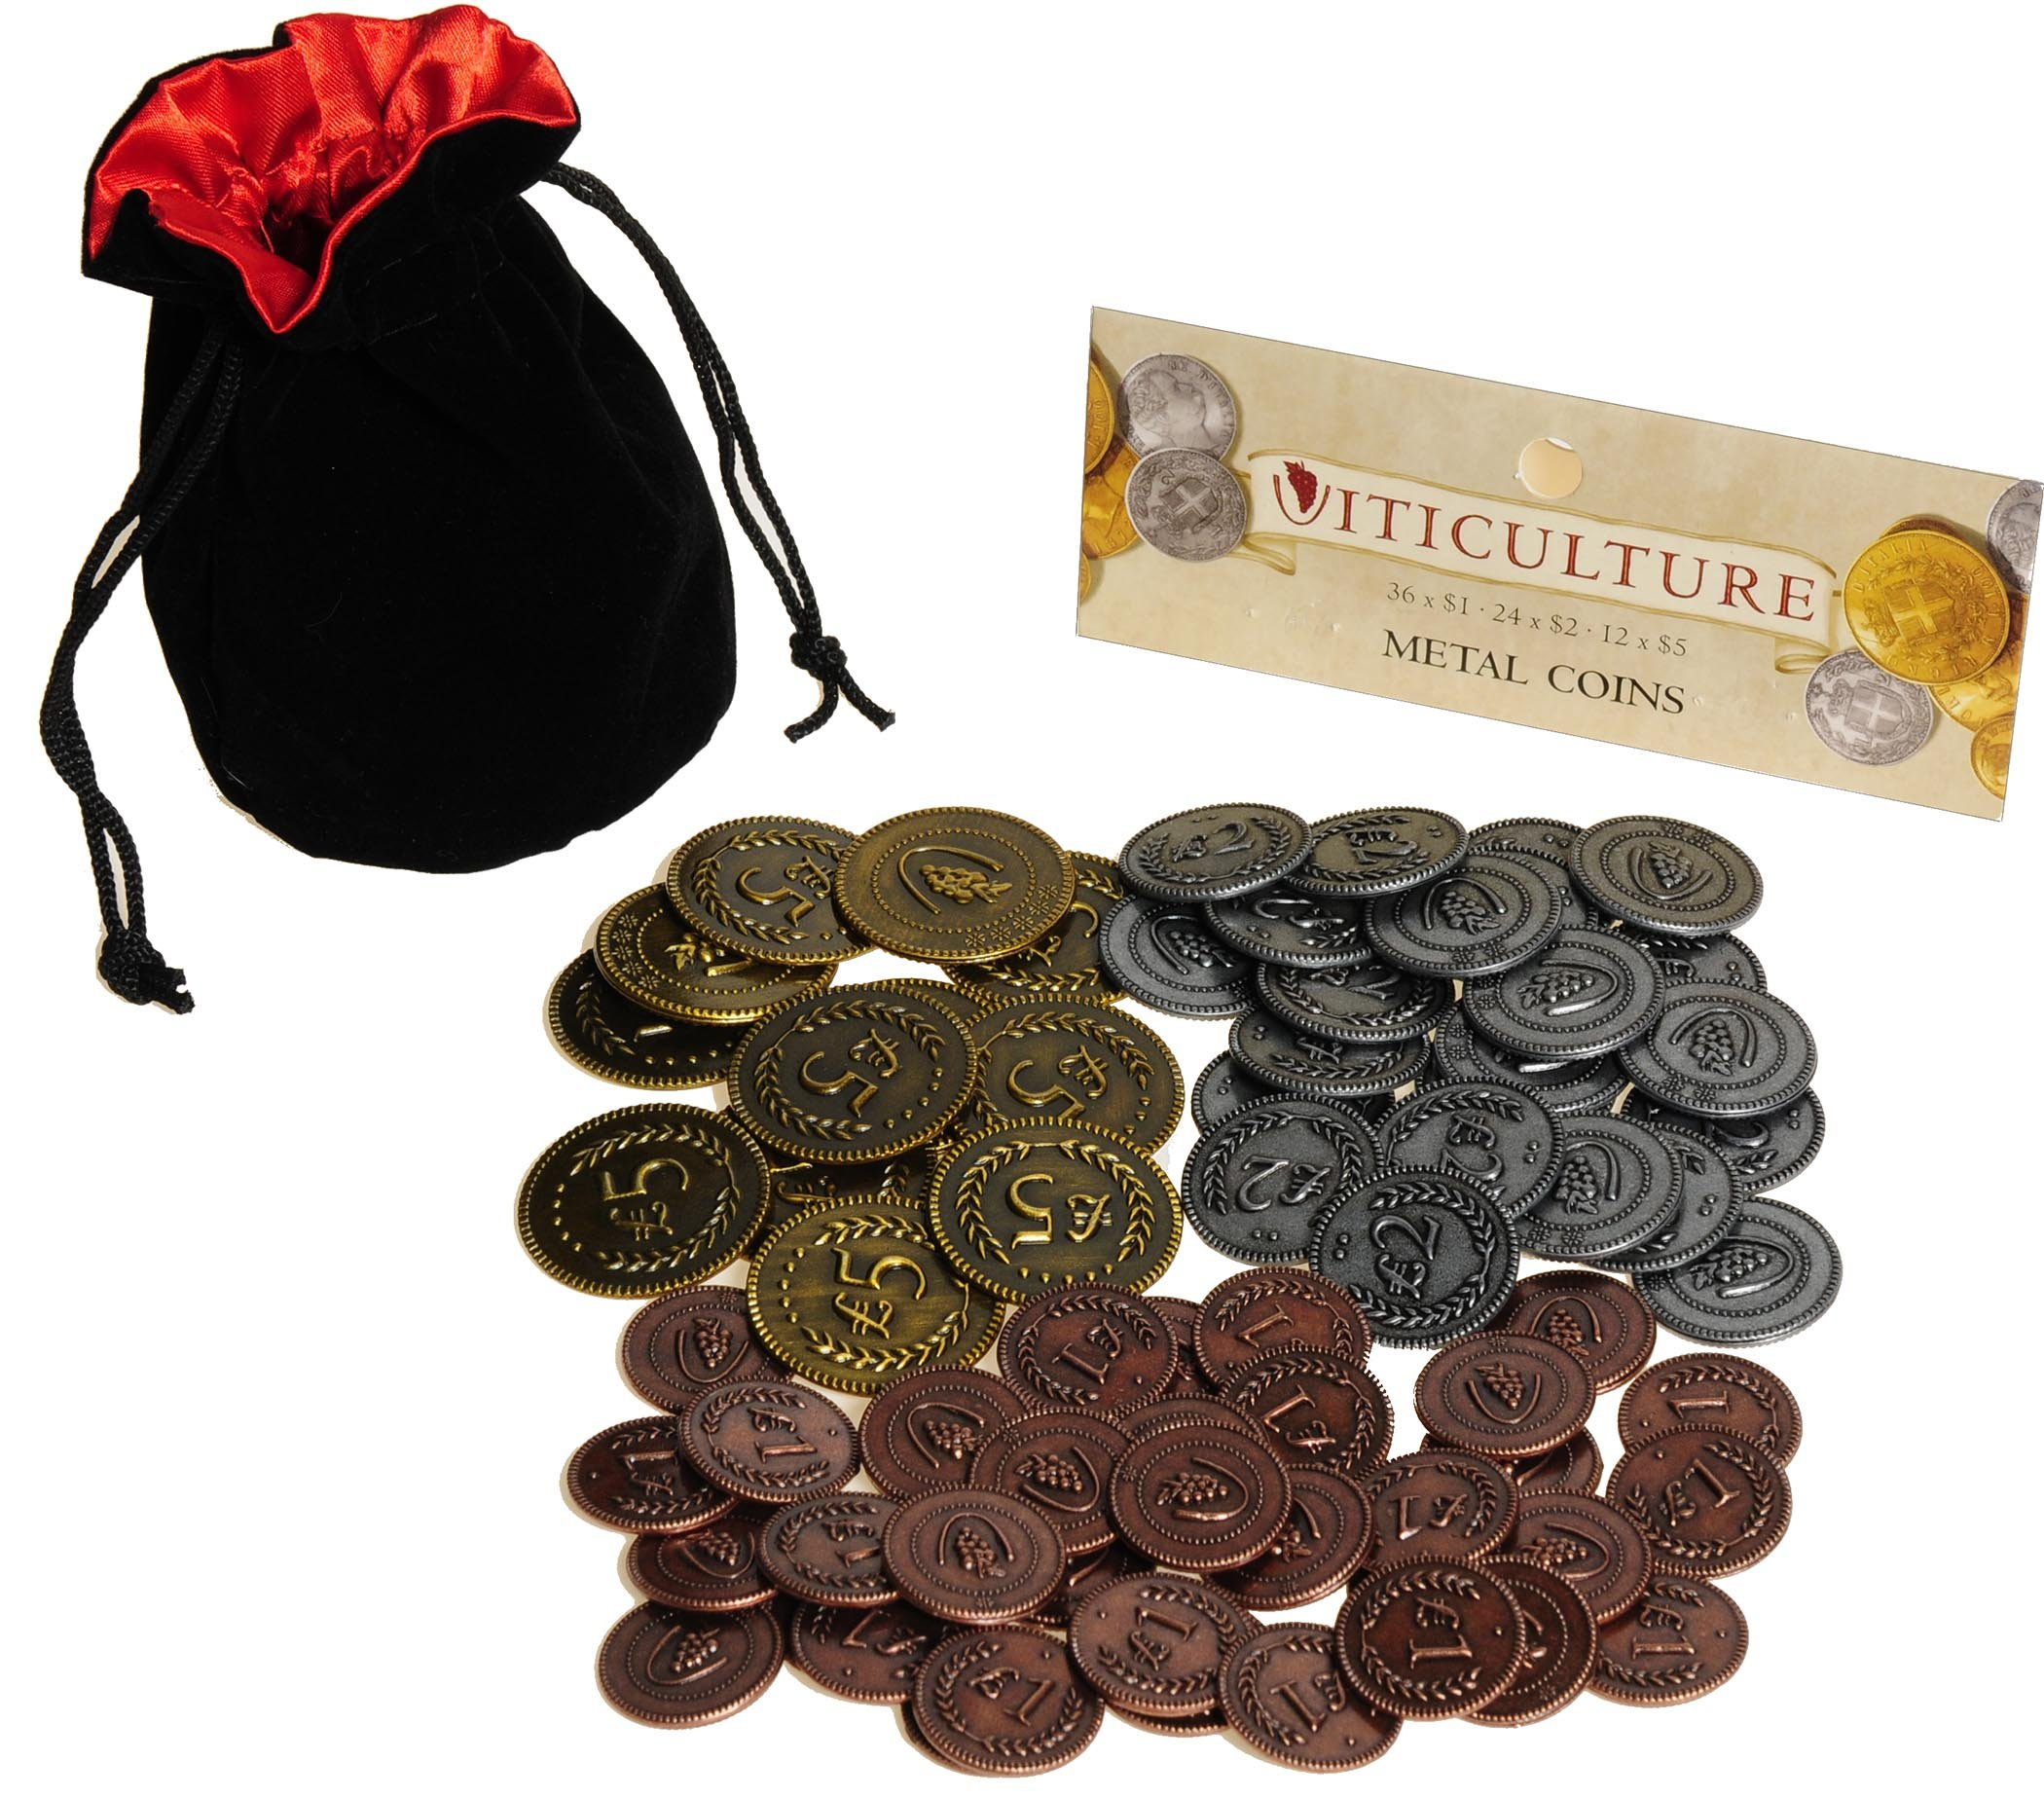 Viticulture Metal Coins Game Enhancement || 72 Coins in Various Denominations || Bonus Black Velvet/Red Satin Lined Drawstring Pouch || Bundled Items by Deluxe Games and Puzzles